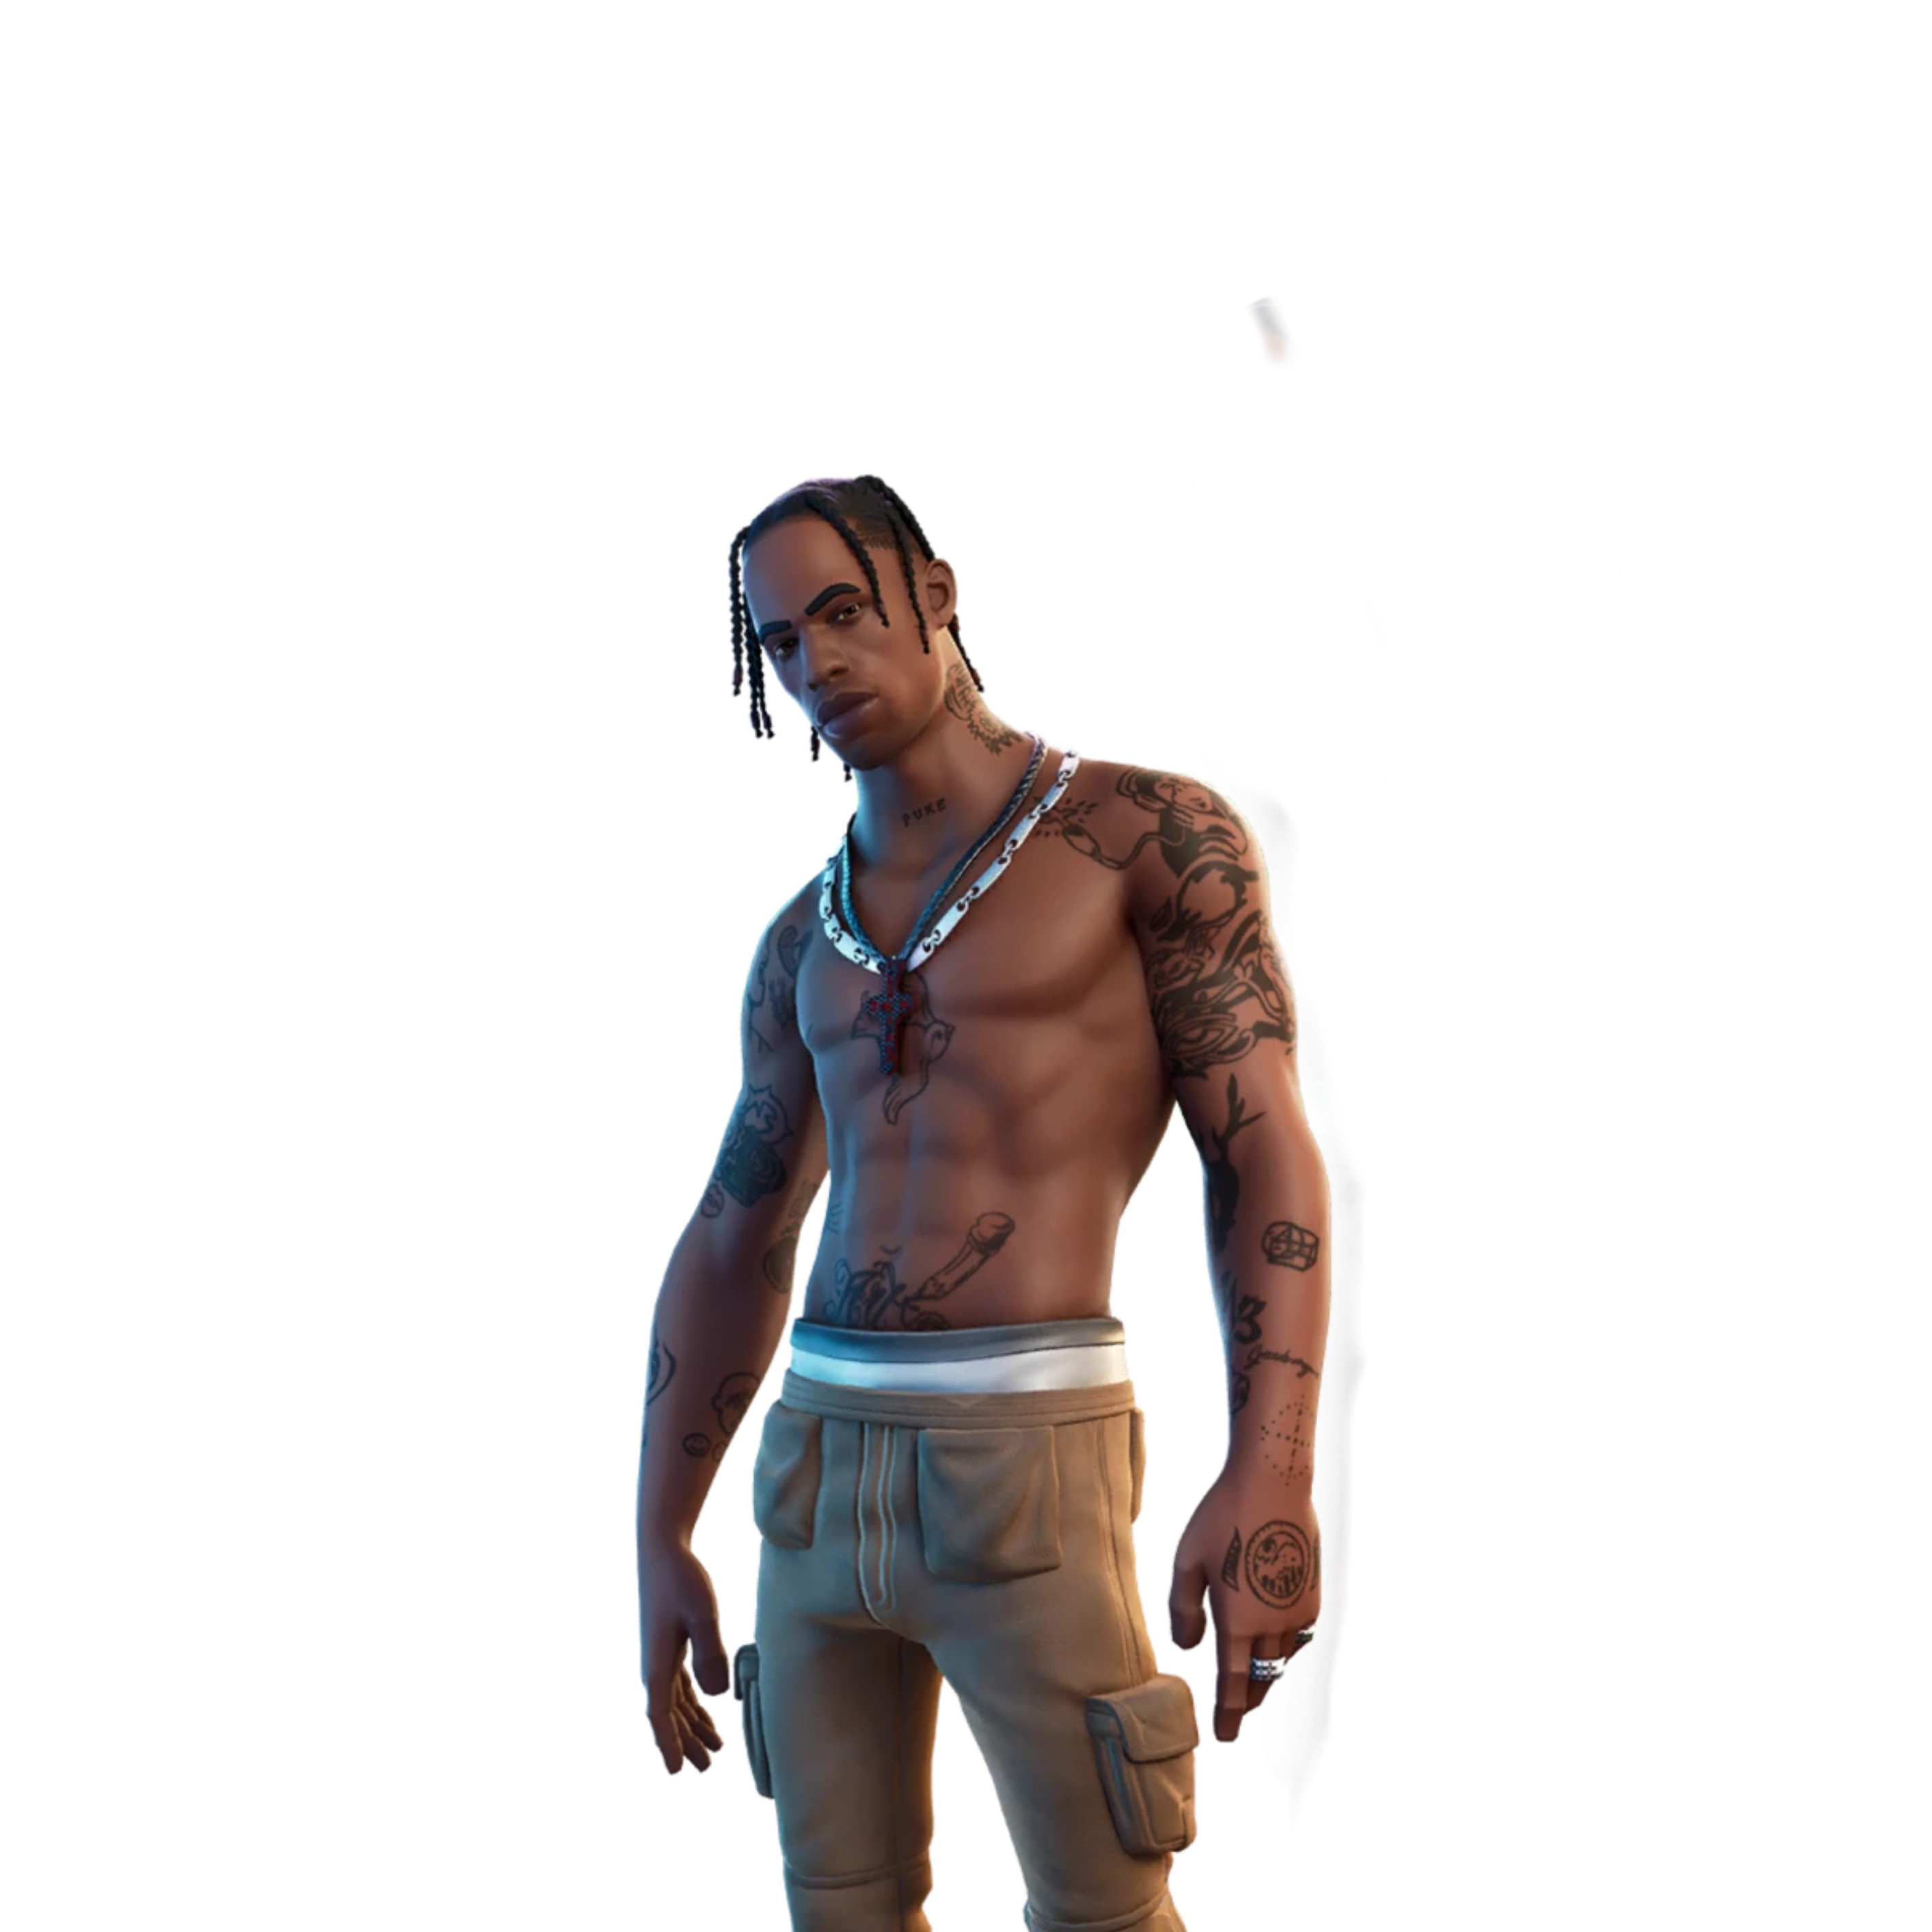 Freetoedit Fortnite Fortnite Fortnite Fortnite Travisscott Skin Skins Fortnitelogo Fortniteskin Skin Fortnite Skinsfortn In 2020 Fortnite Skin Travis Scott